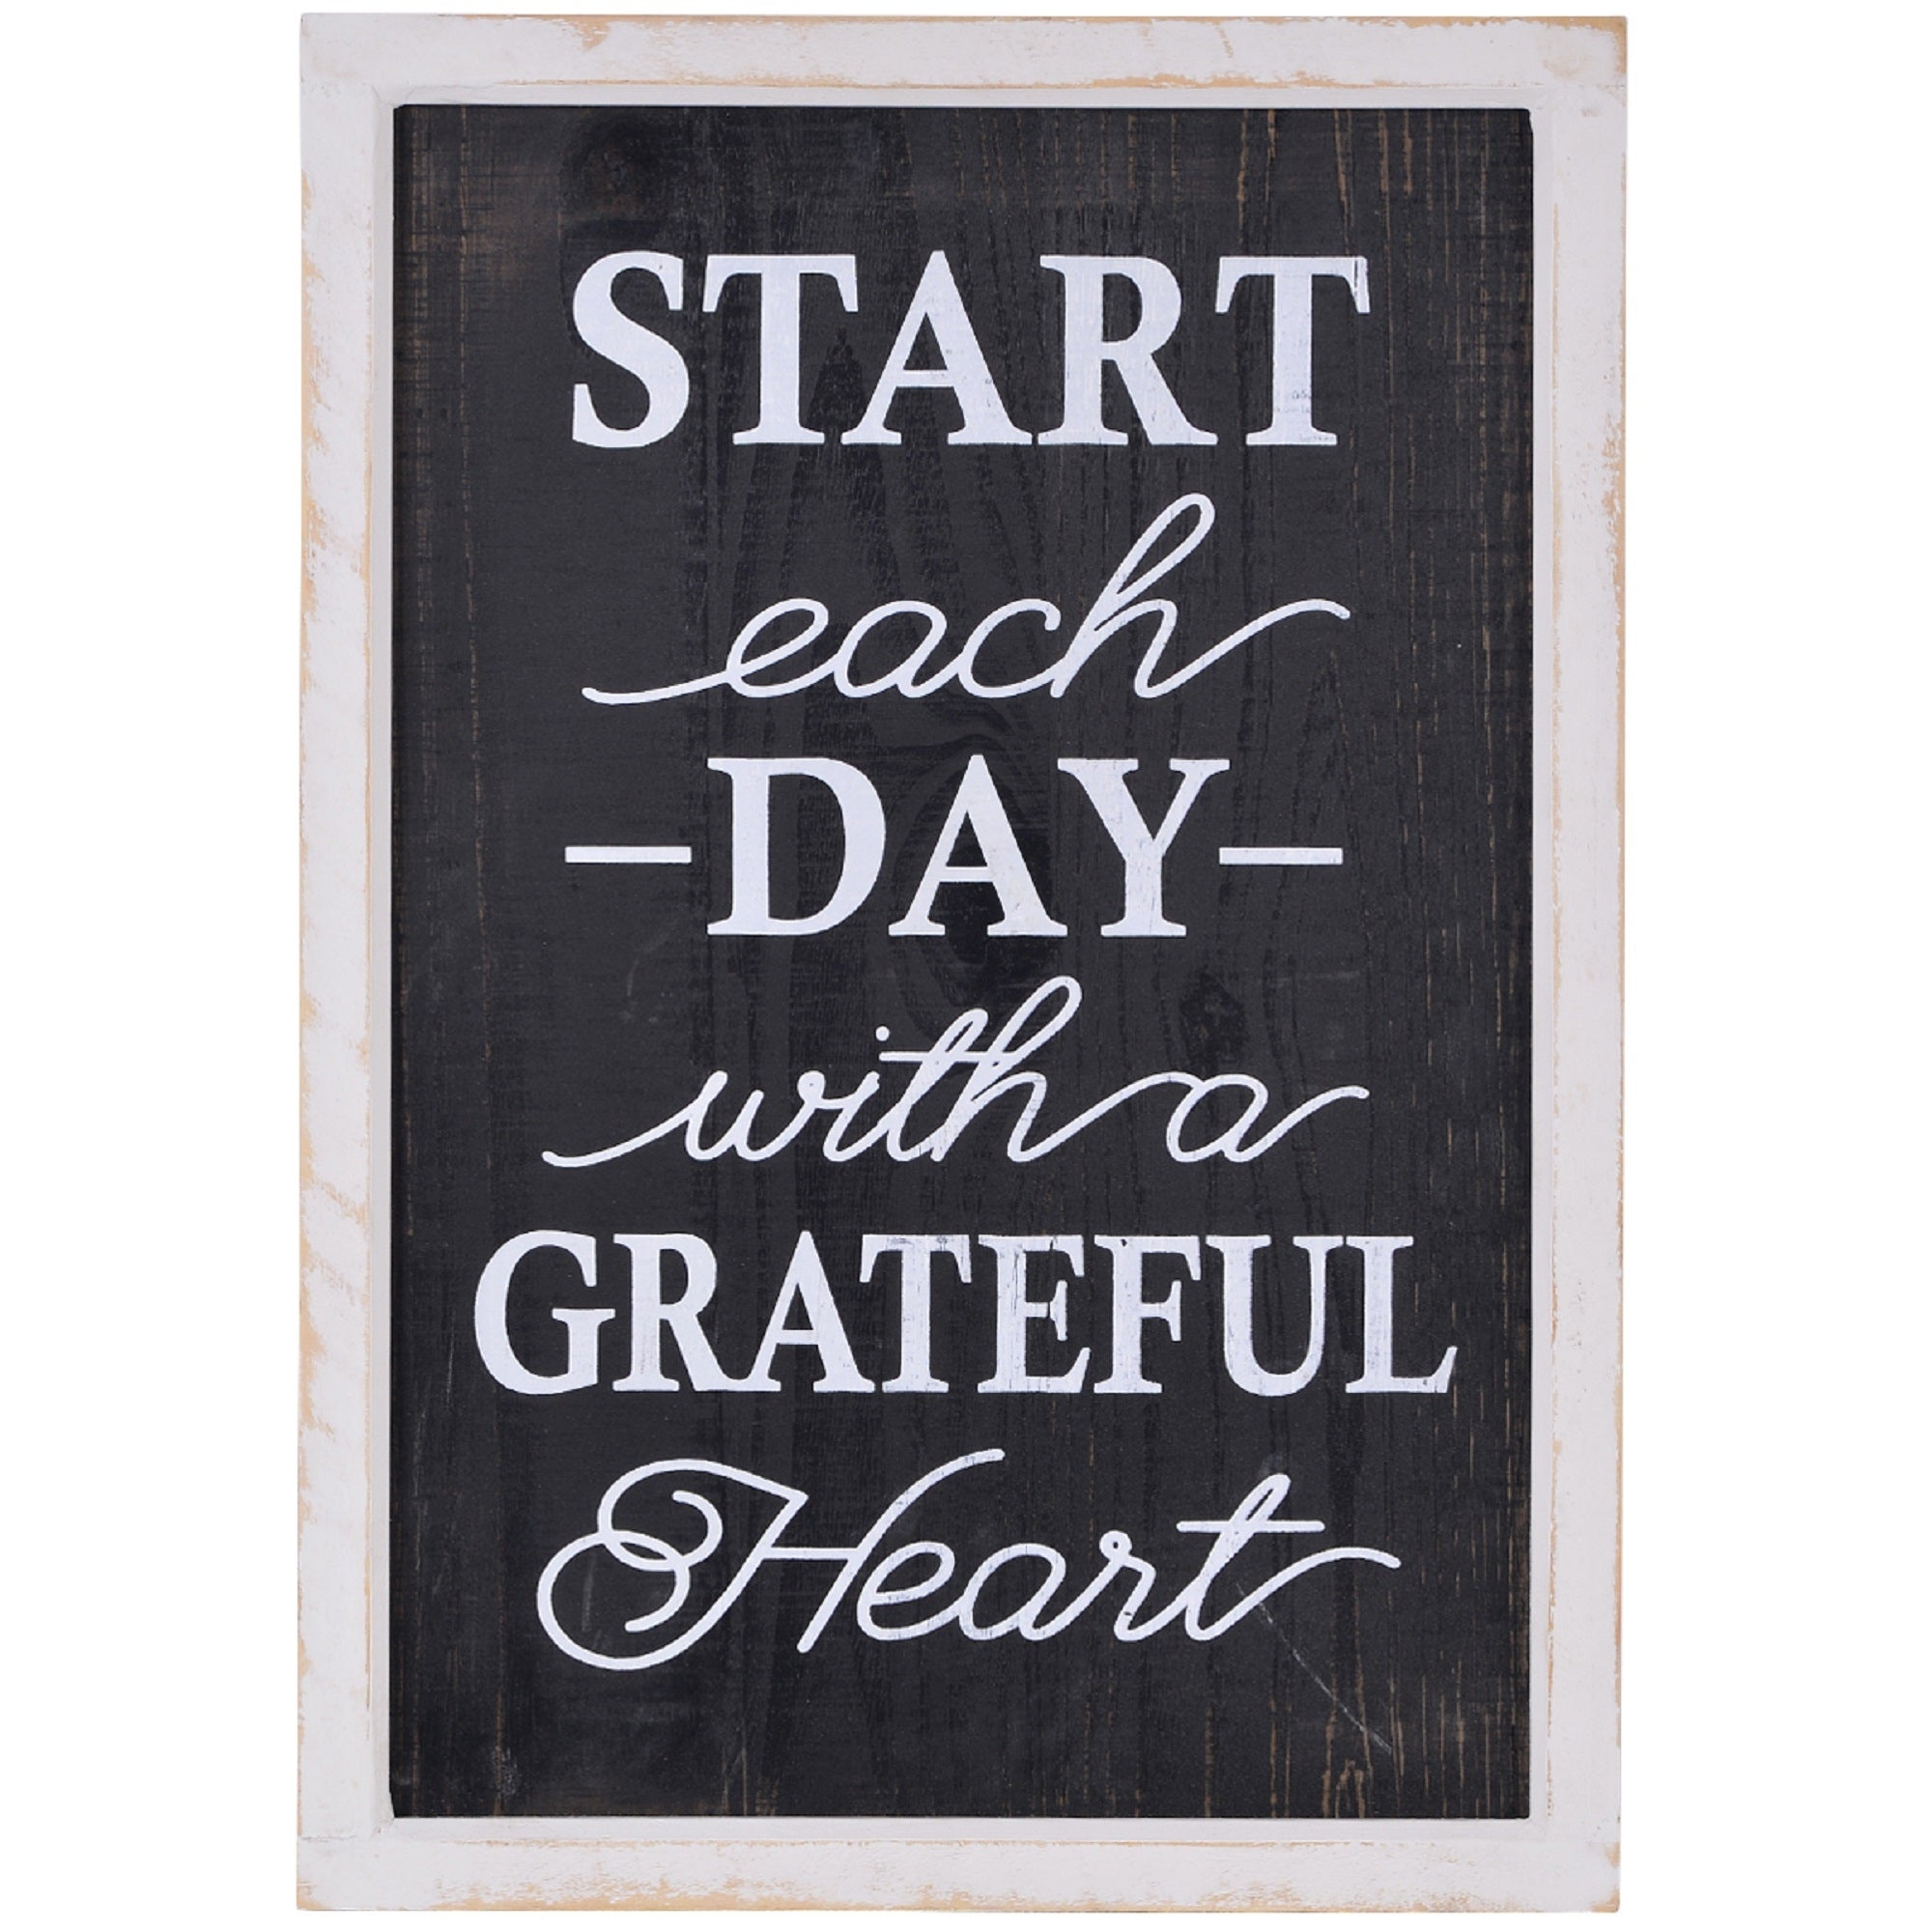 20 Black And White Start Each Day With A Grateful Heart Wall Decor Overstock 28125120